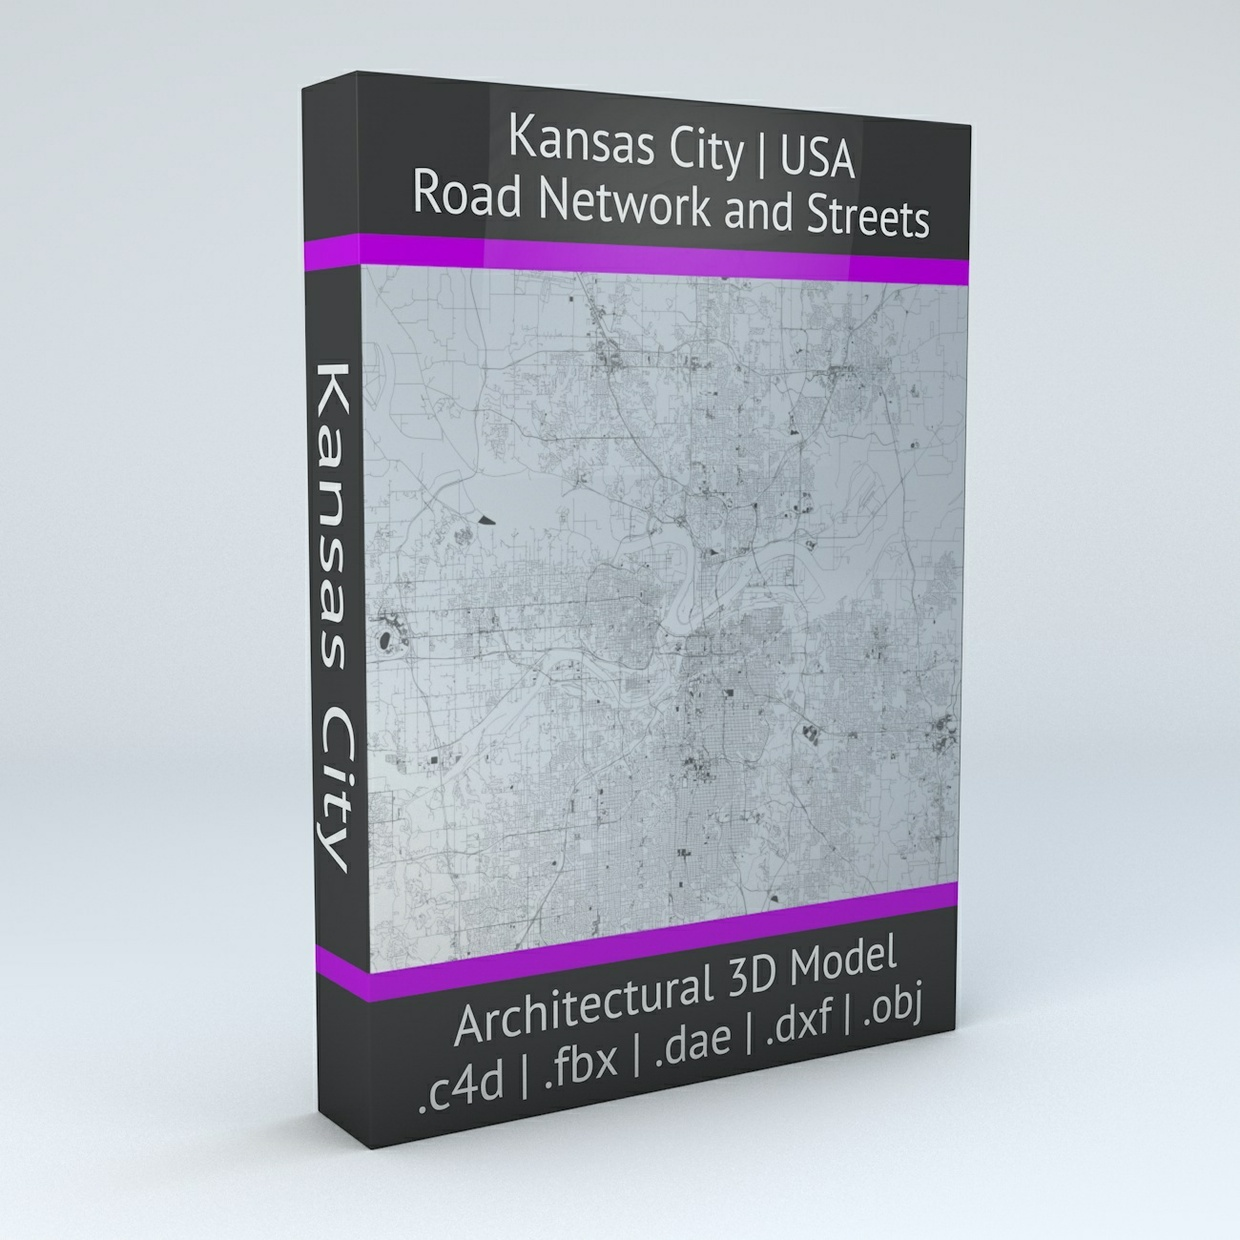 Kansas City Road Network Architectural 3D Model